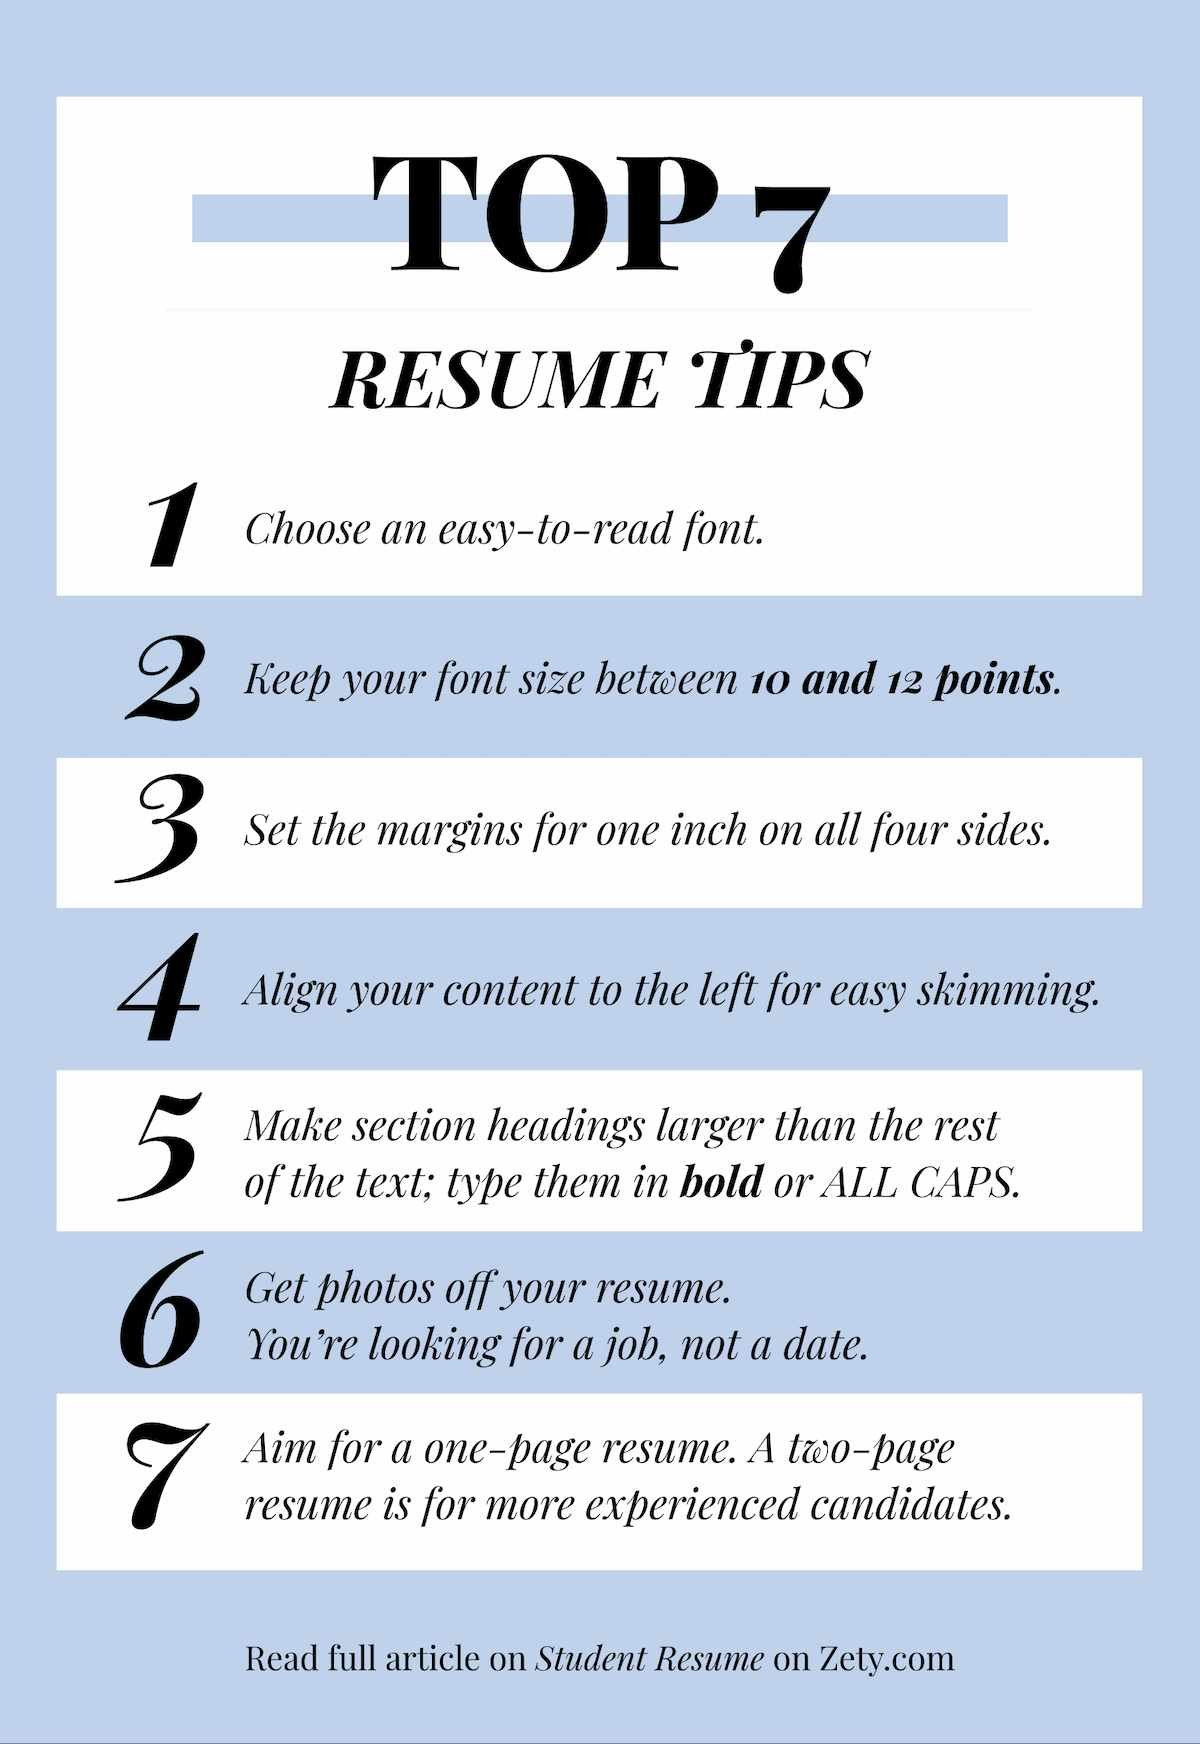 Best resume tips you should follow